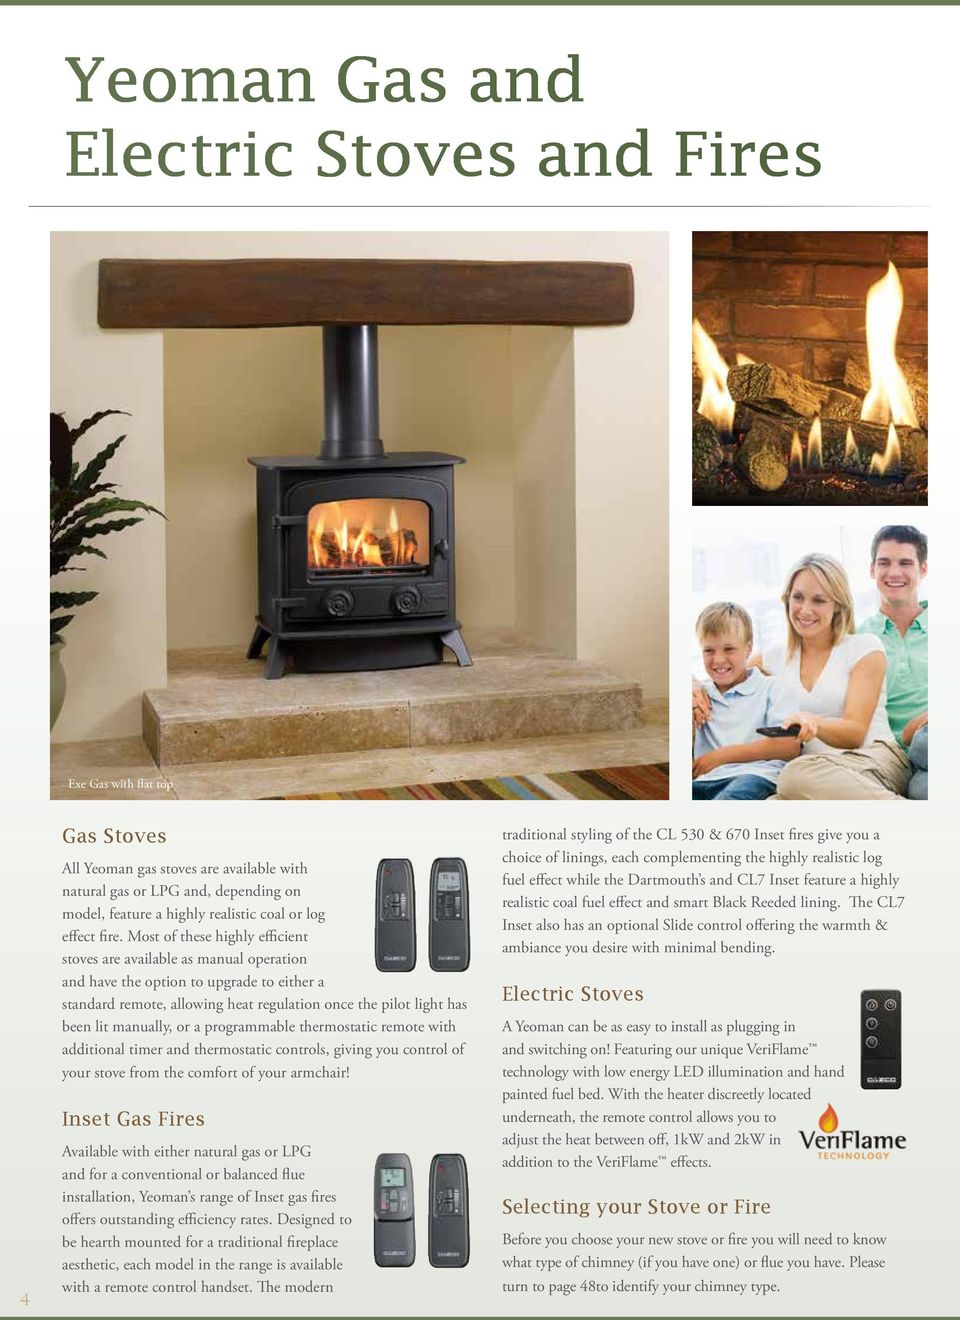 Most of these highly efficient stoves are available as manual operation and have the option to upgrade to either a standard remote, allowing heat regulation once the pilot light has been lit